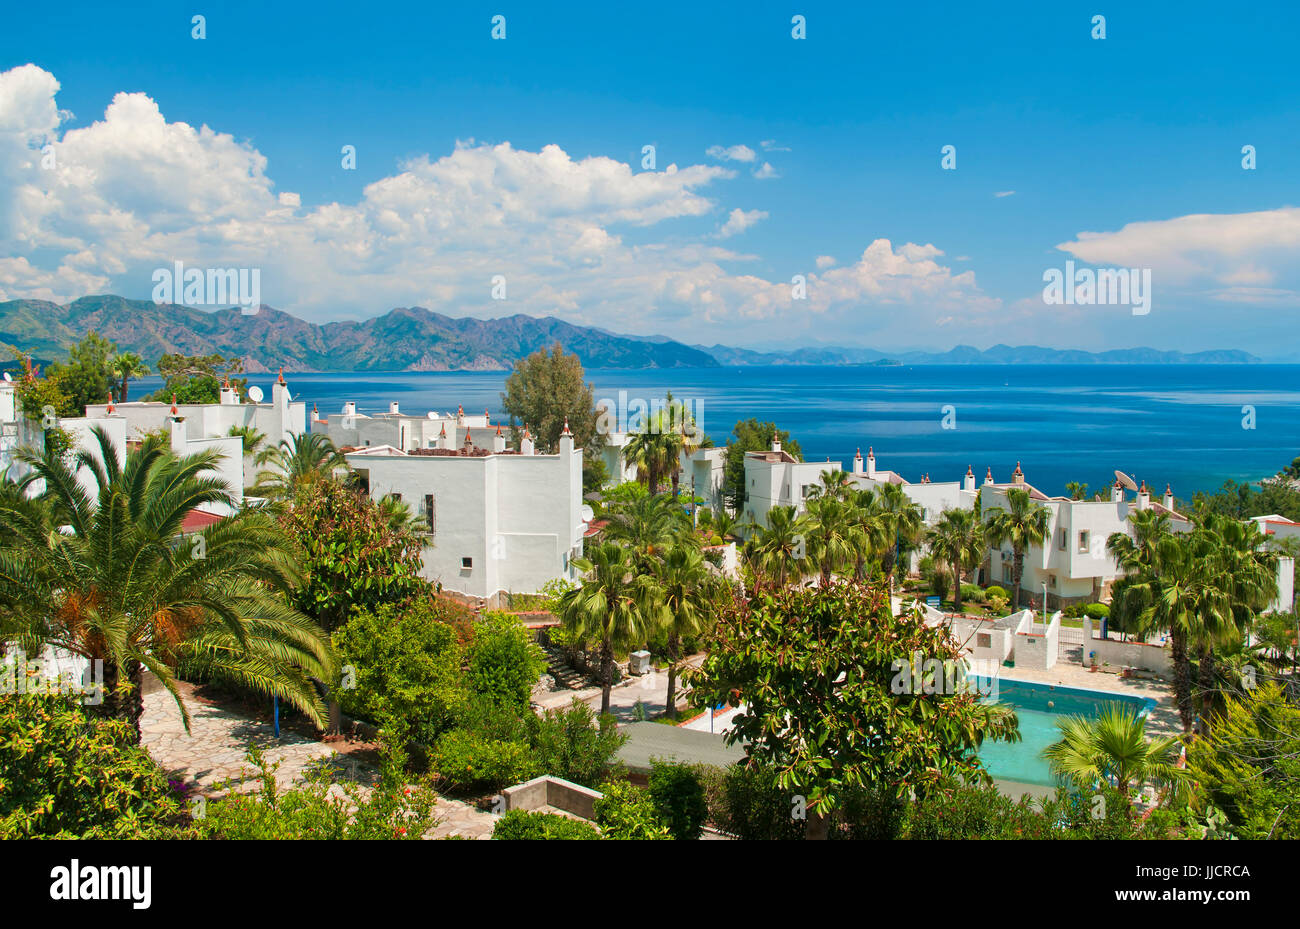 white villas with palm trees in Profesorler Sitesi at Amos Bay in Aegean sea with mountainous islands and clouds Stock Photo